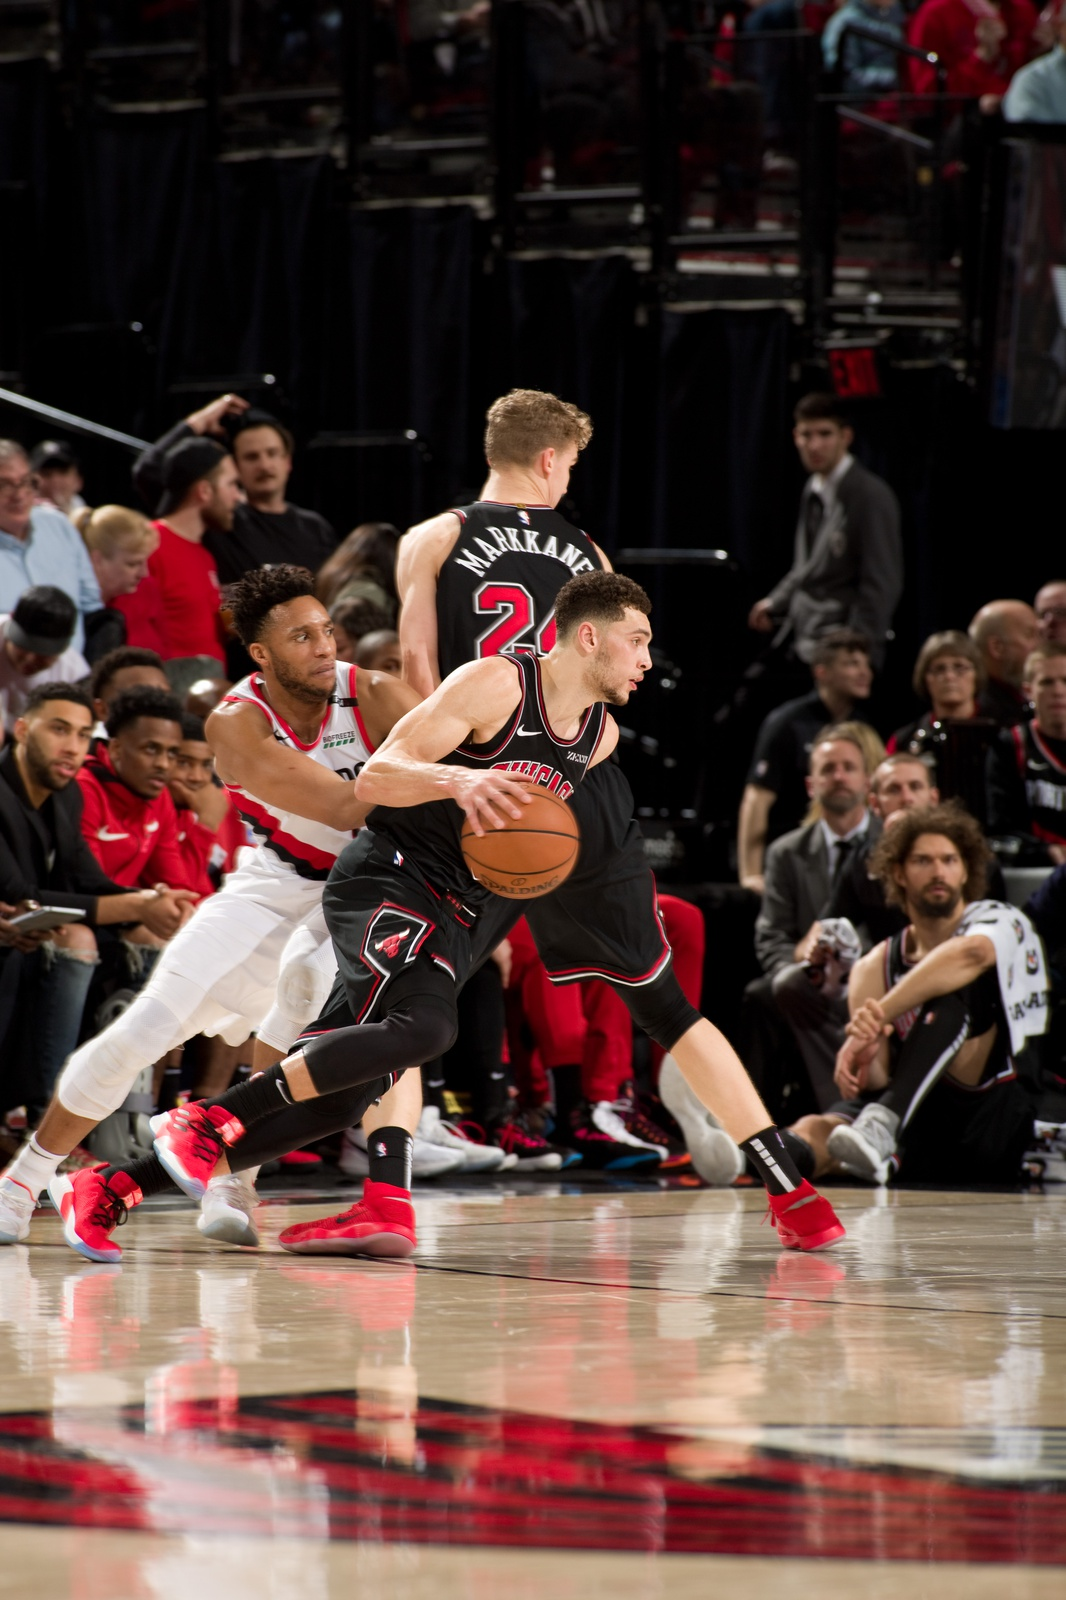 Zach LaVine #8 of the Chicago Bulls handles the ball against the Portland Trail Blazers on January 9, 2019 at the Moda Center Arena in Portland, Oregon.